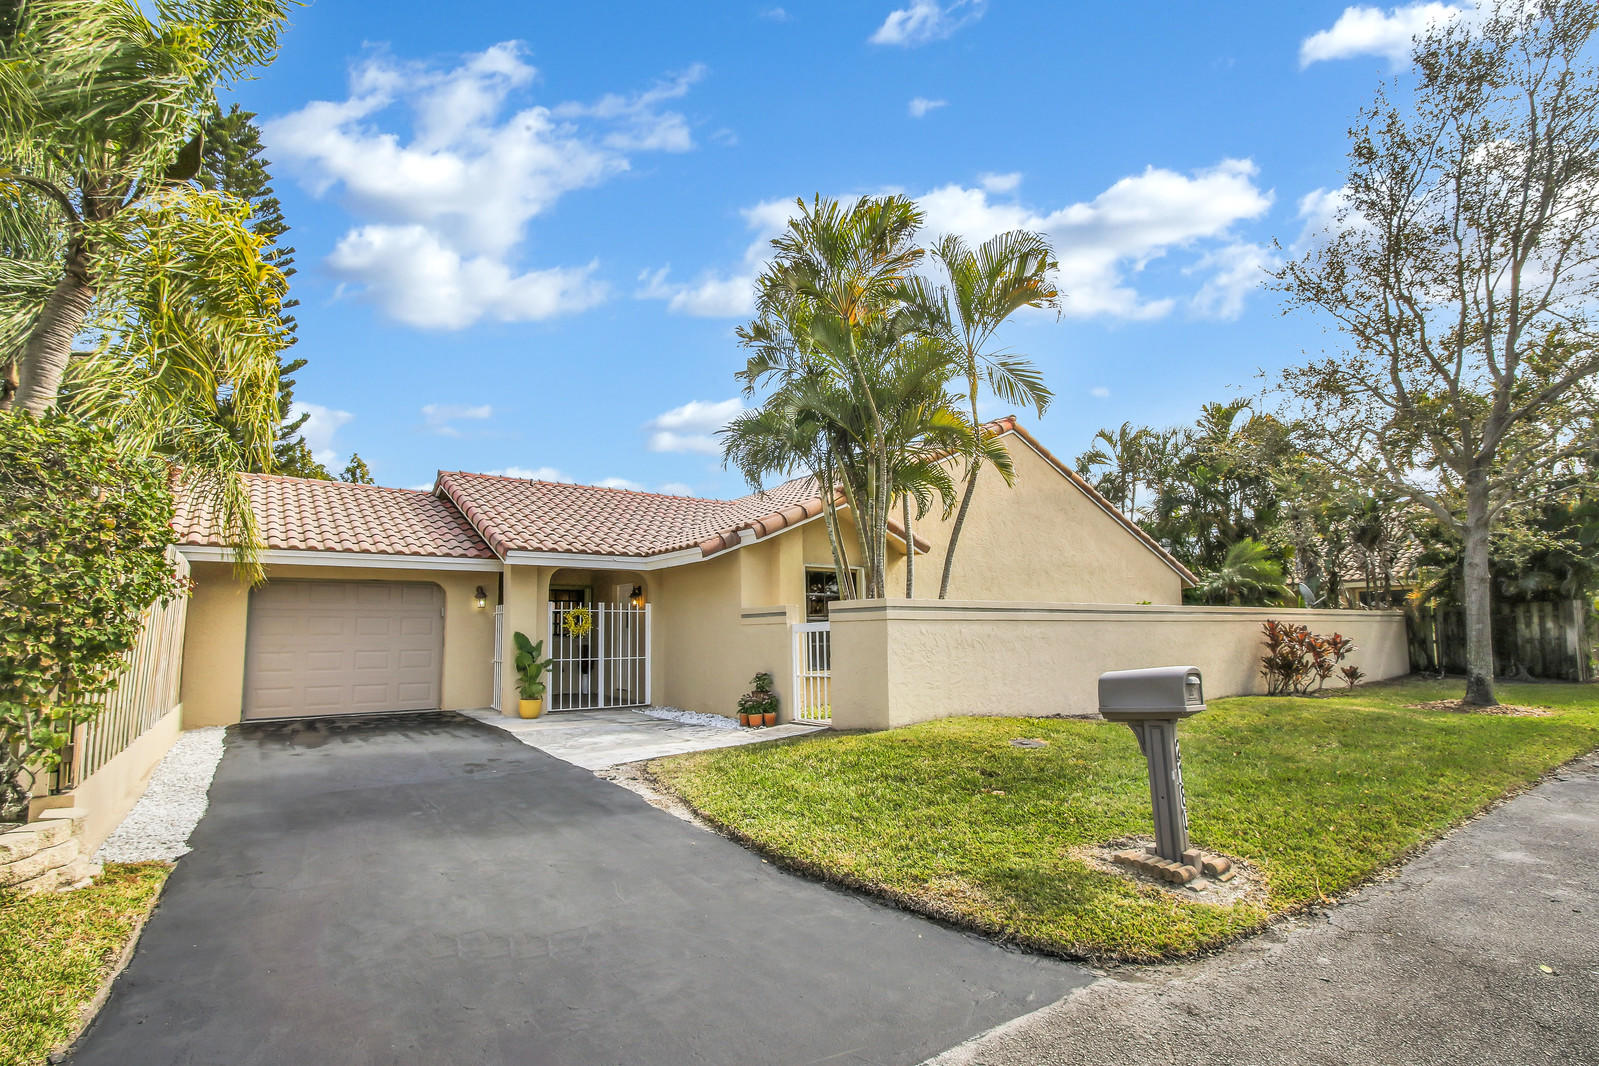 2180 Nw 14th Street, Delray Beach, FL 33445